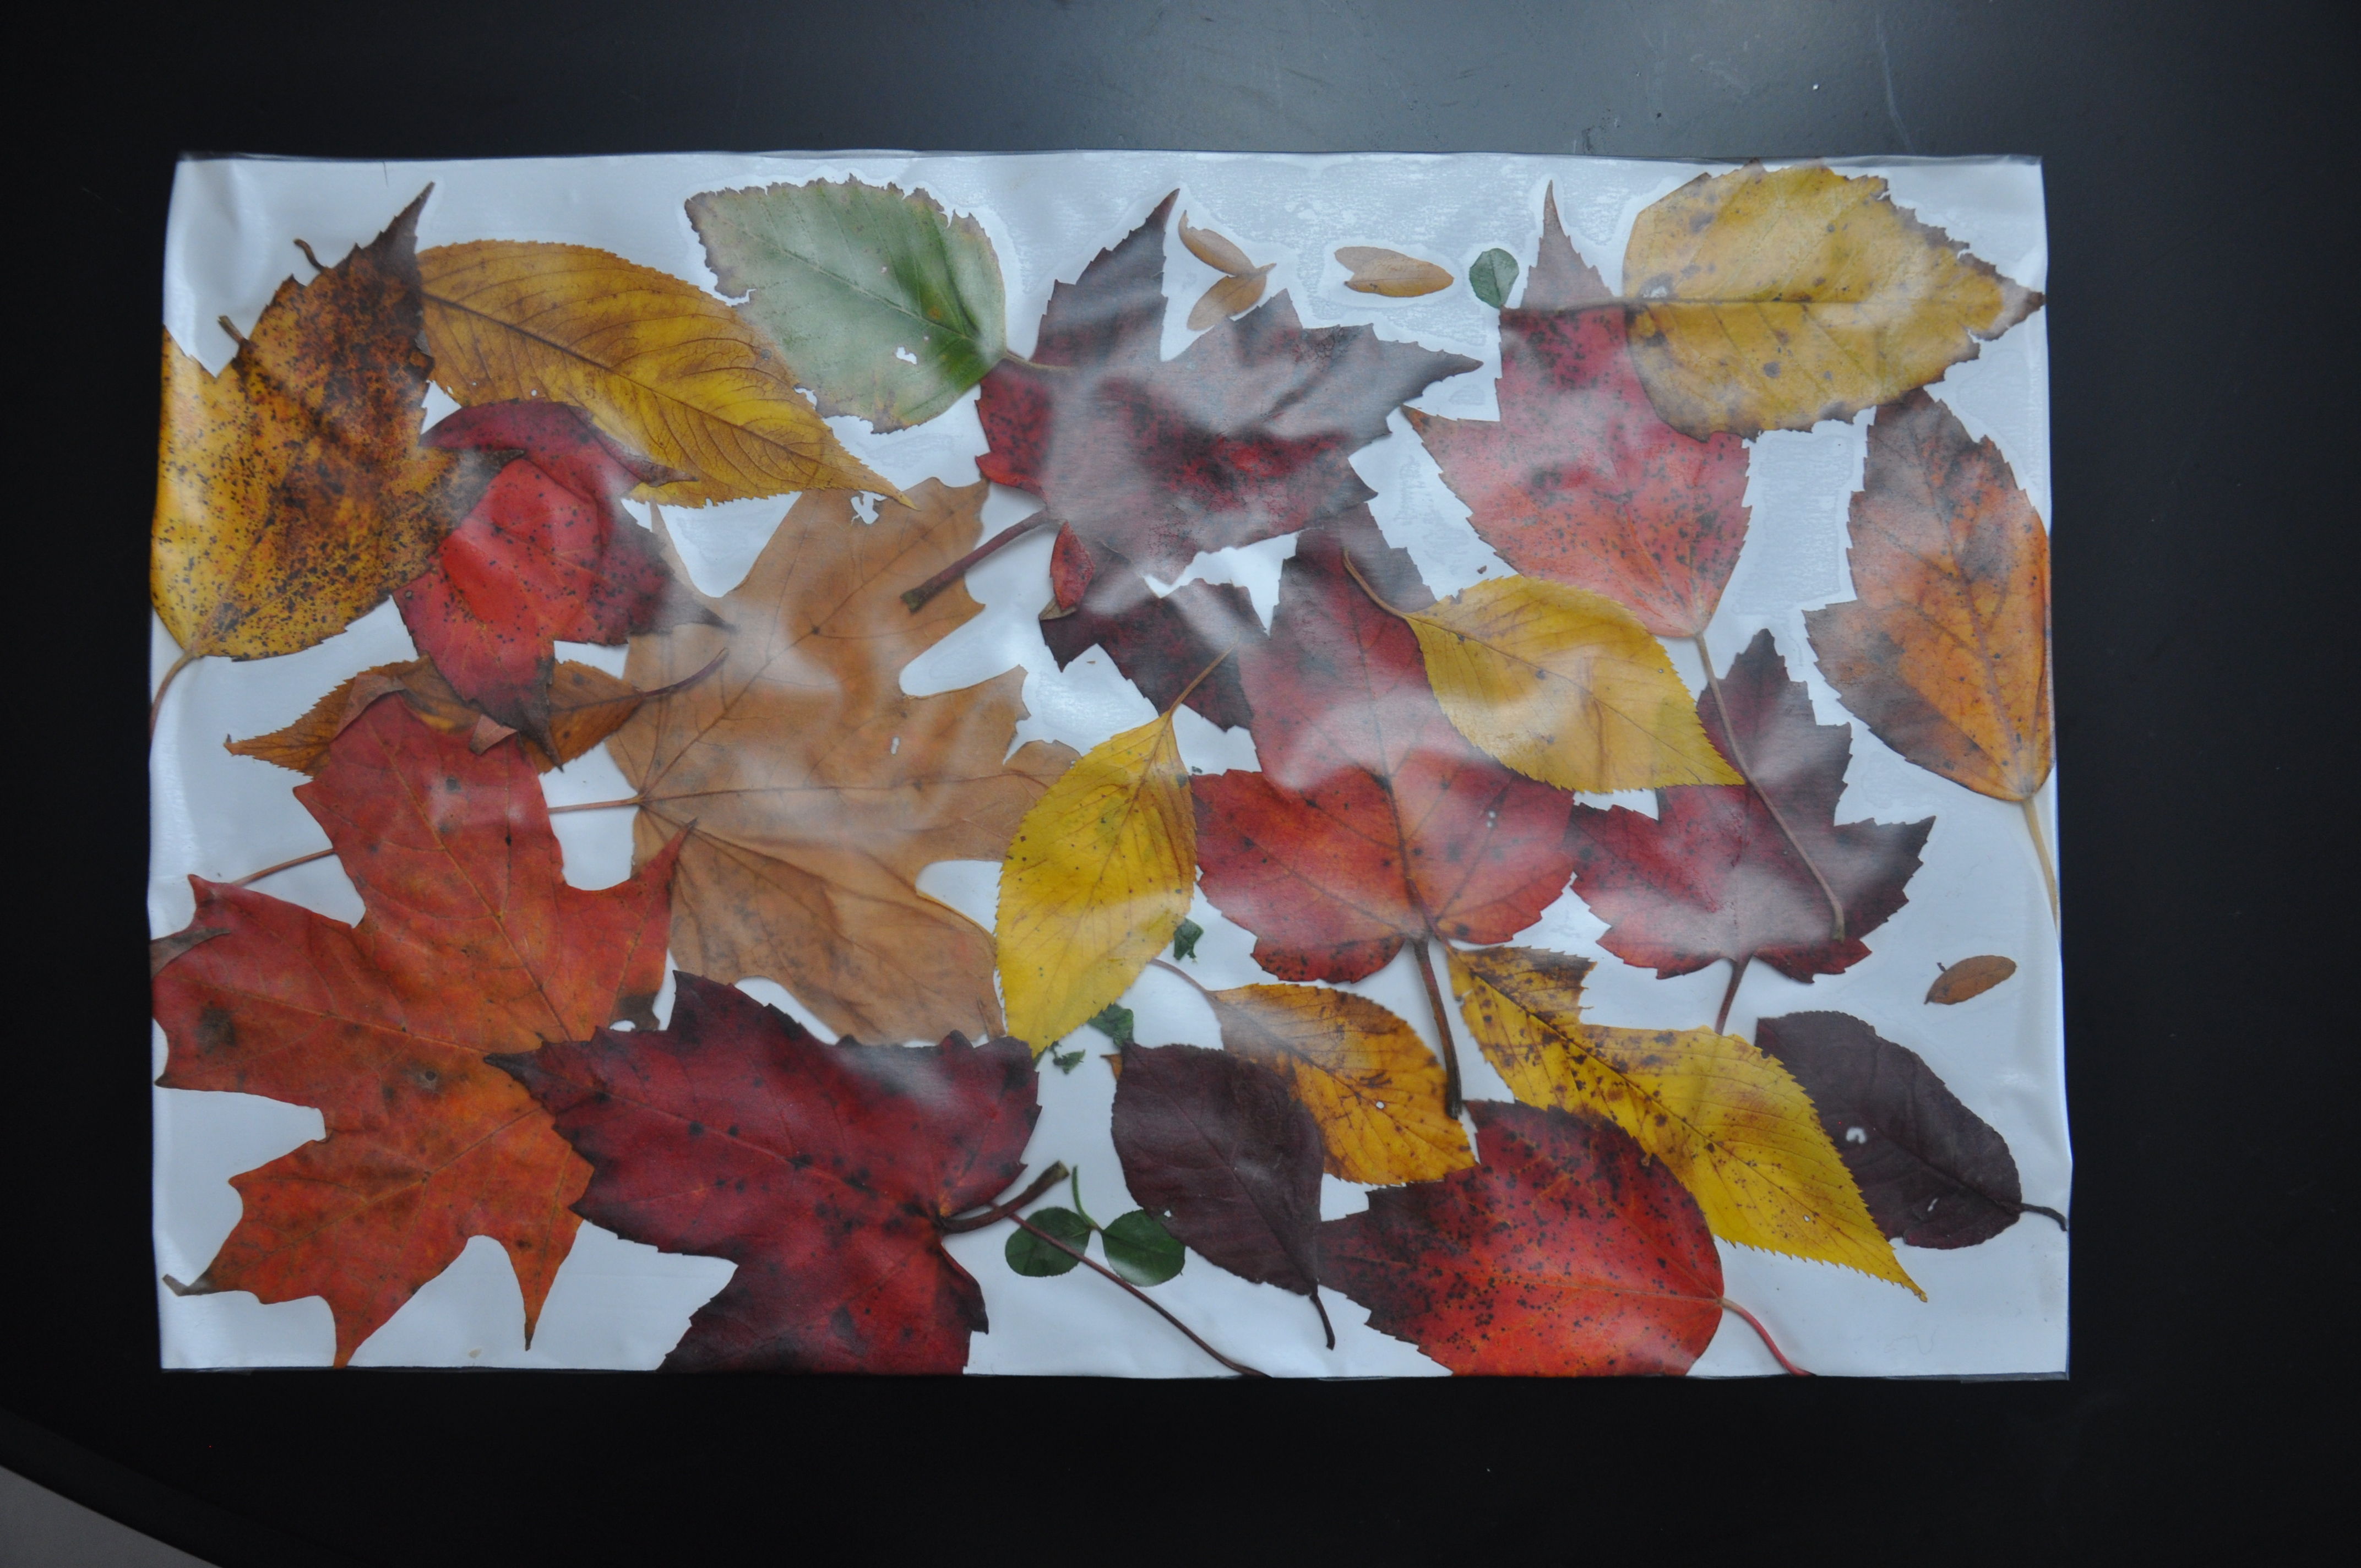 Contact Paper Placemats with Leaf